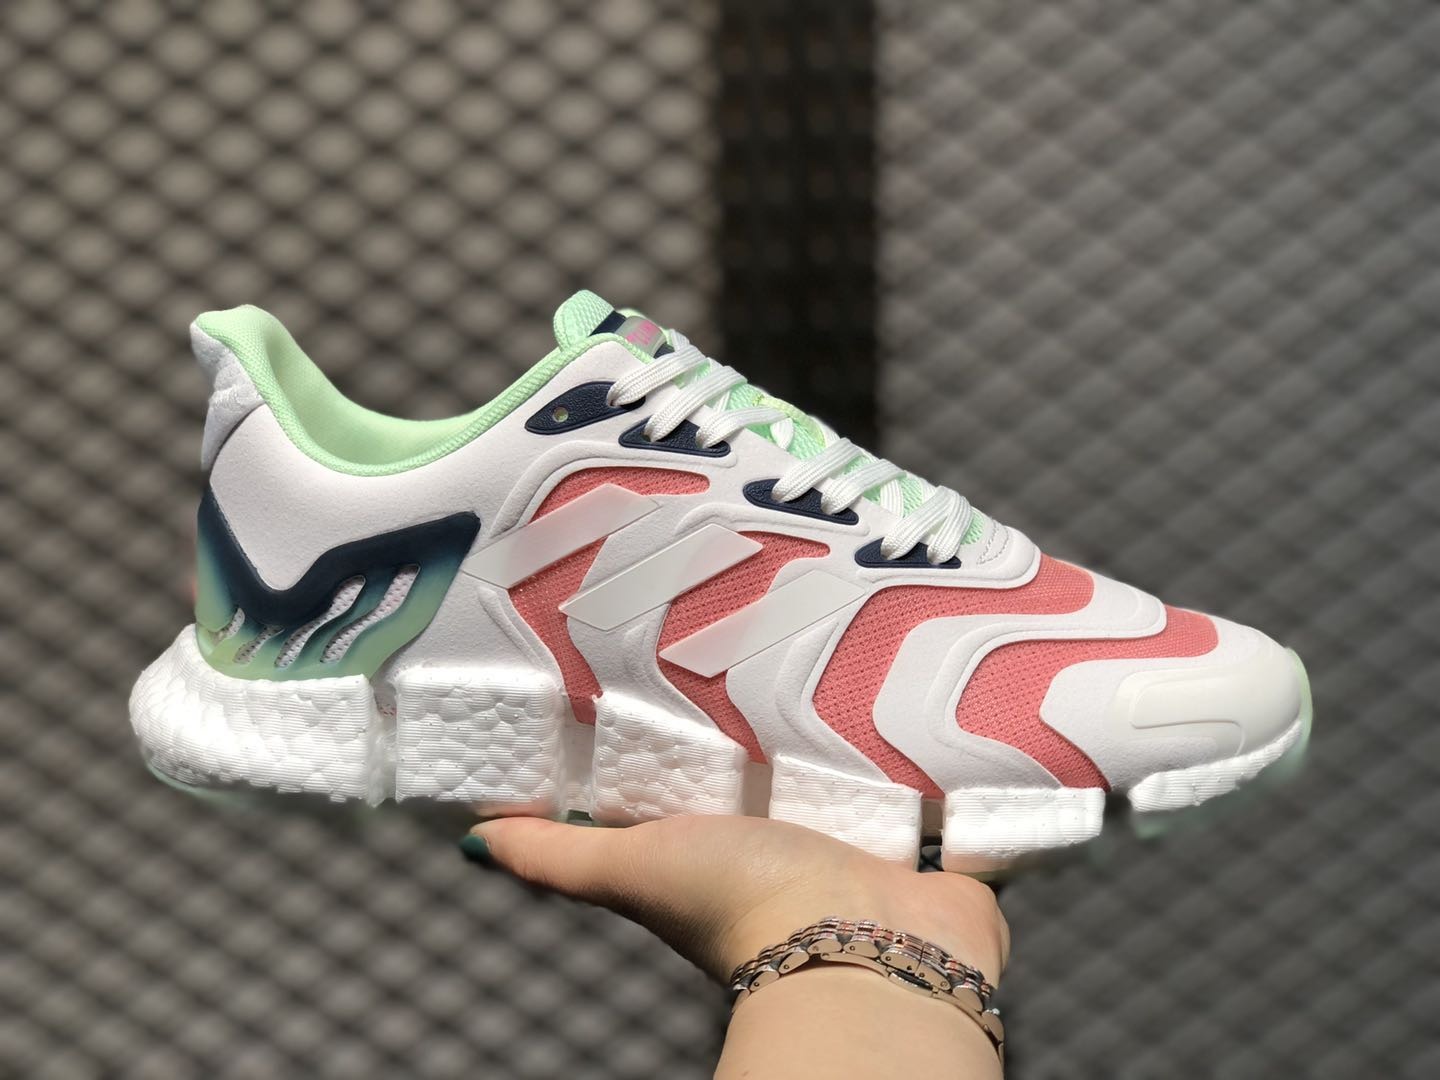 Adidas Wmns Climacool Cloud White/Pink-Green FX7849